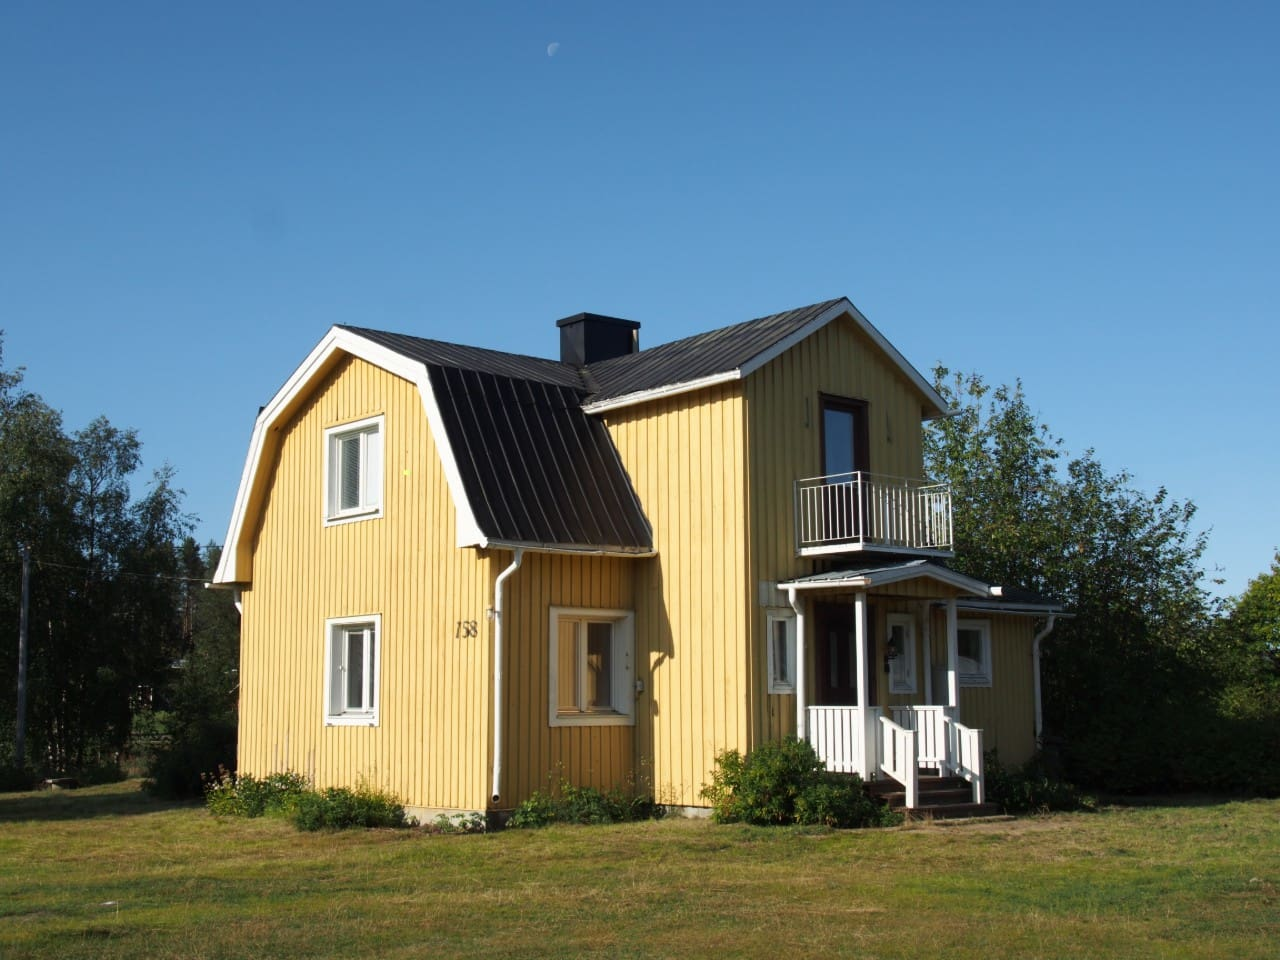 'Lapland Lights' is a traditional timber cottage built at the turn of the 20th century.